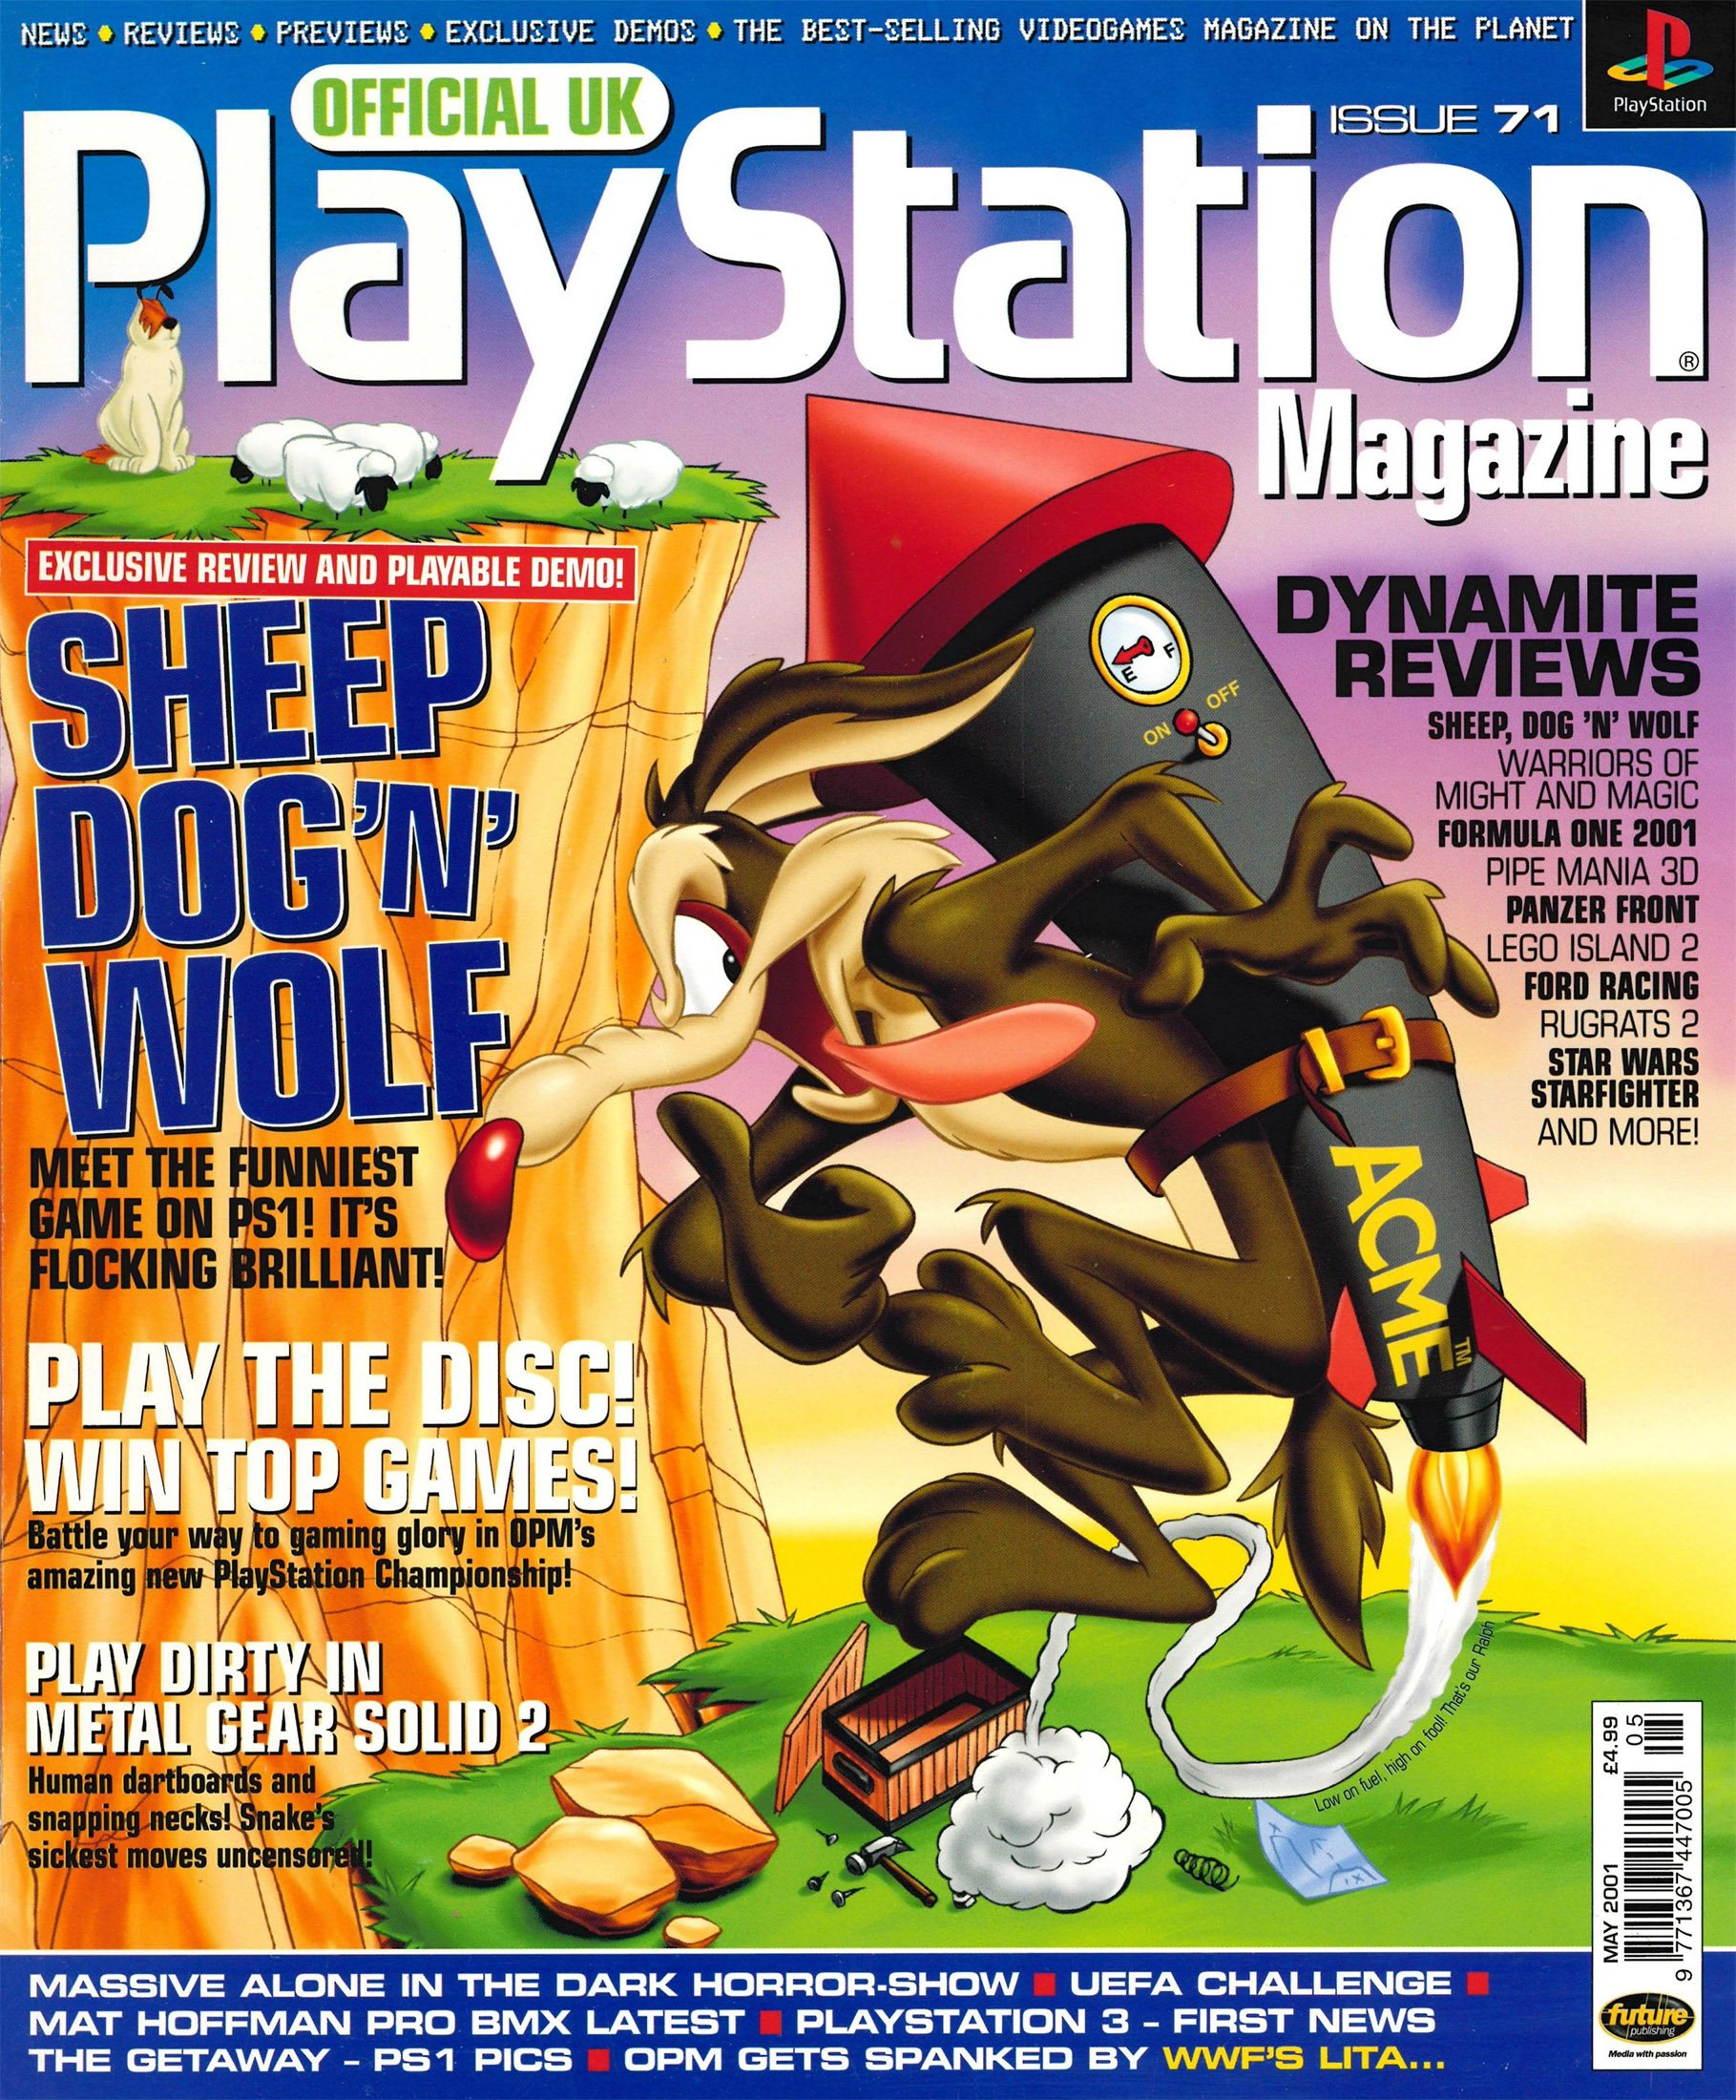 Official UK PlayStation Magazine Issue 071 (May 2001)